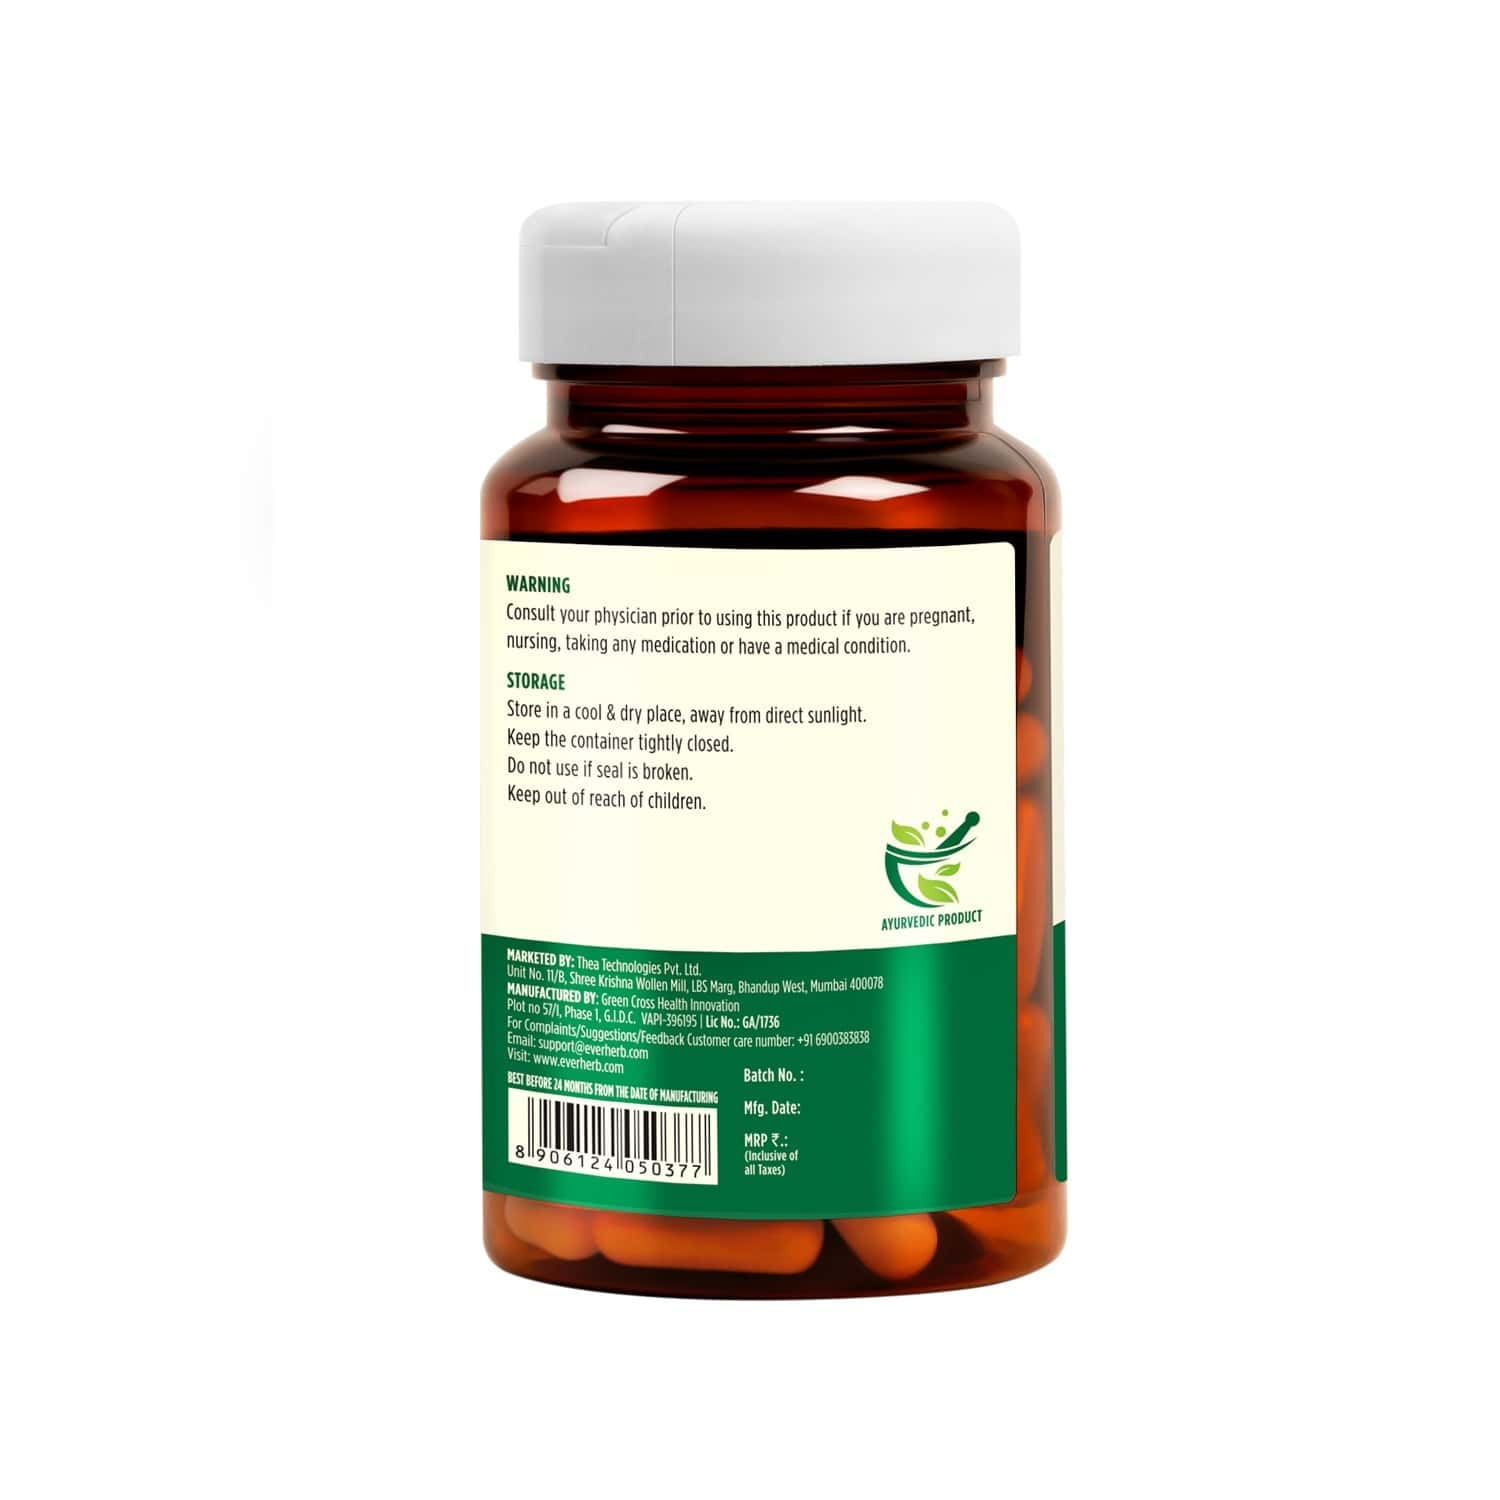 Everherb Giloy (guduchi) 500mg - Ayush Recommended Immunity Booster - Maintains Resipiratory Health - Bottle Of 60